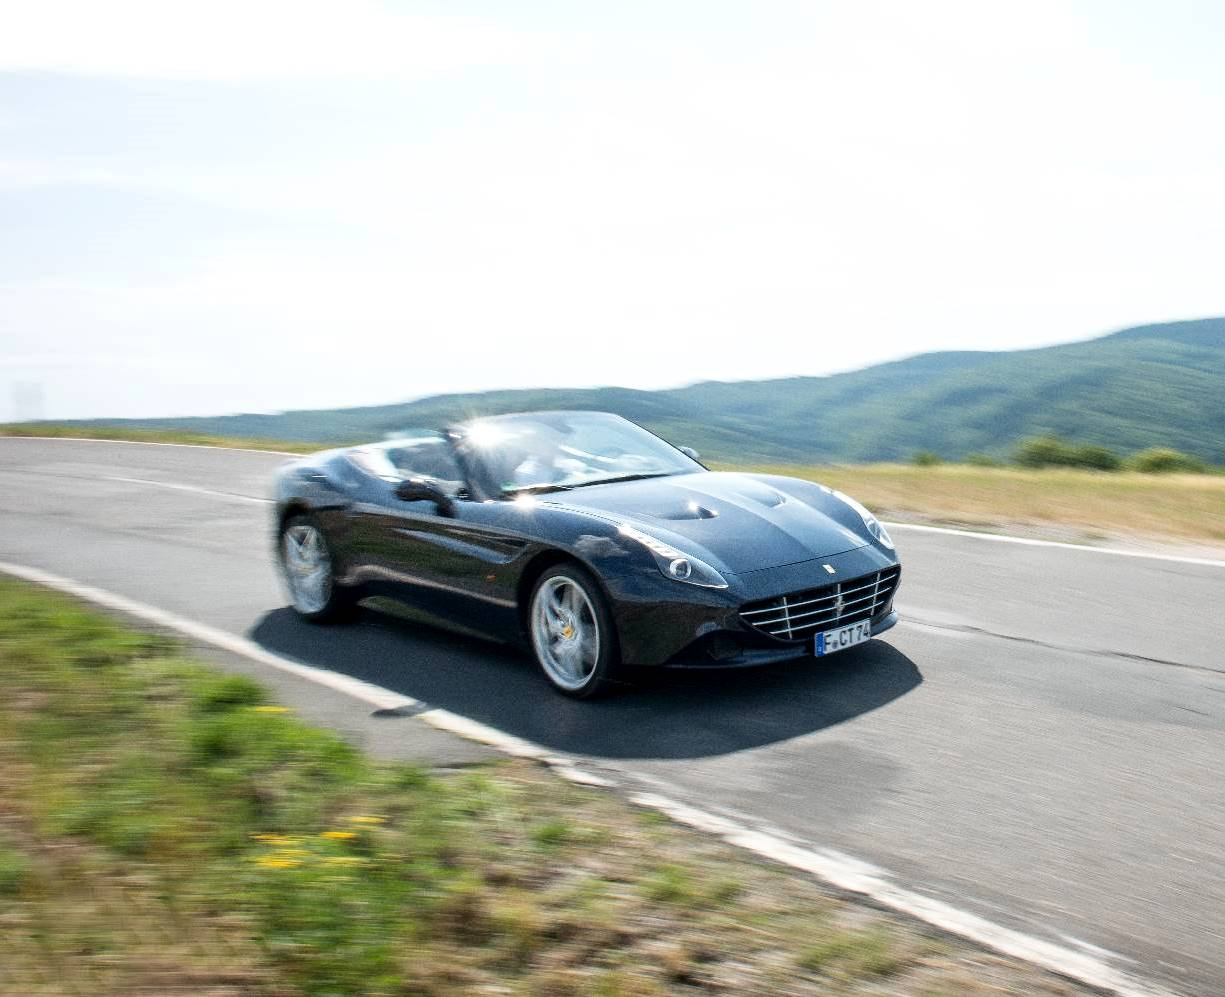 hight resolution of performance wise the ferrari california t s v8 turbocharged engine provides 560hp and up to 755nm of torque this allows the california t to sprint from